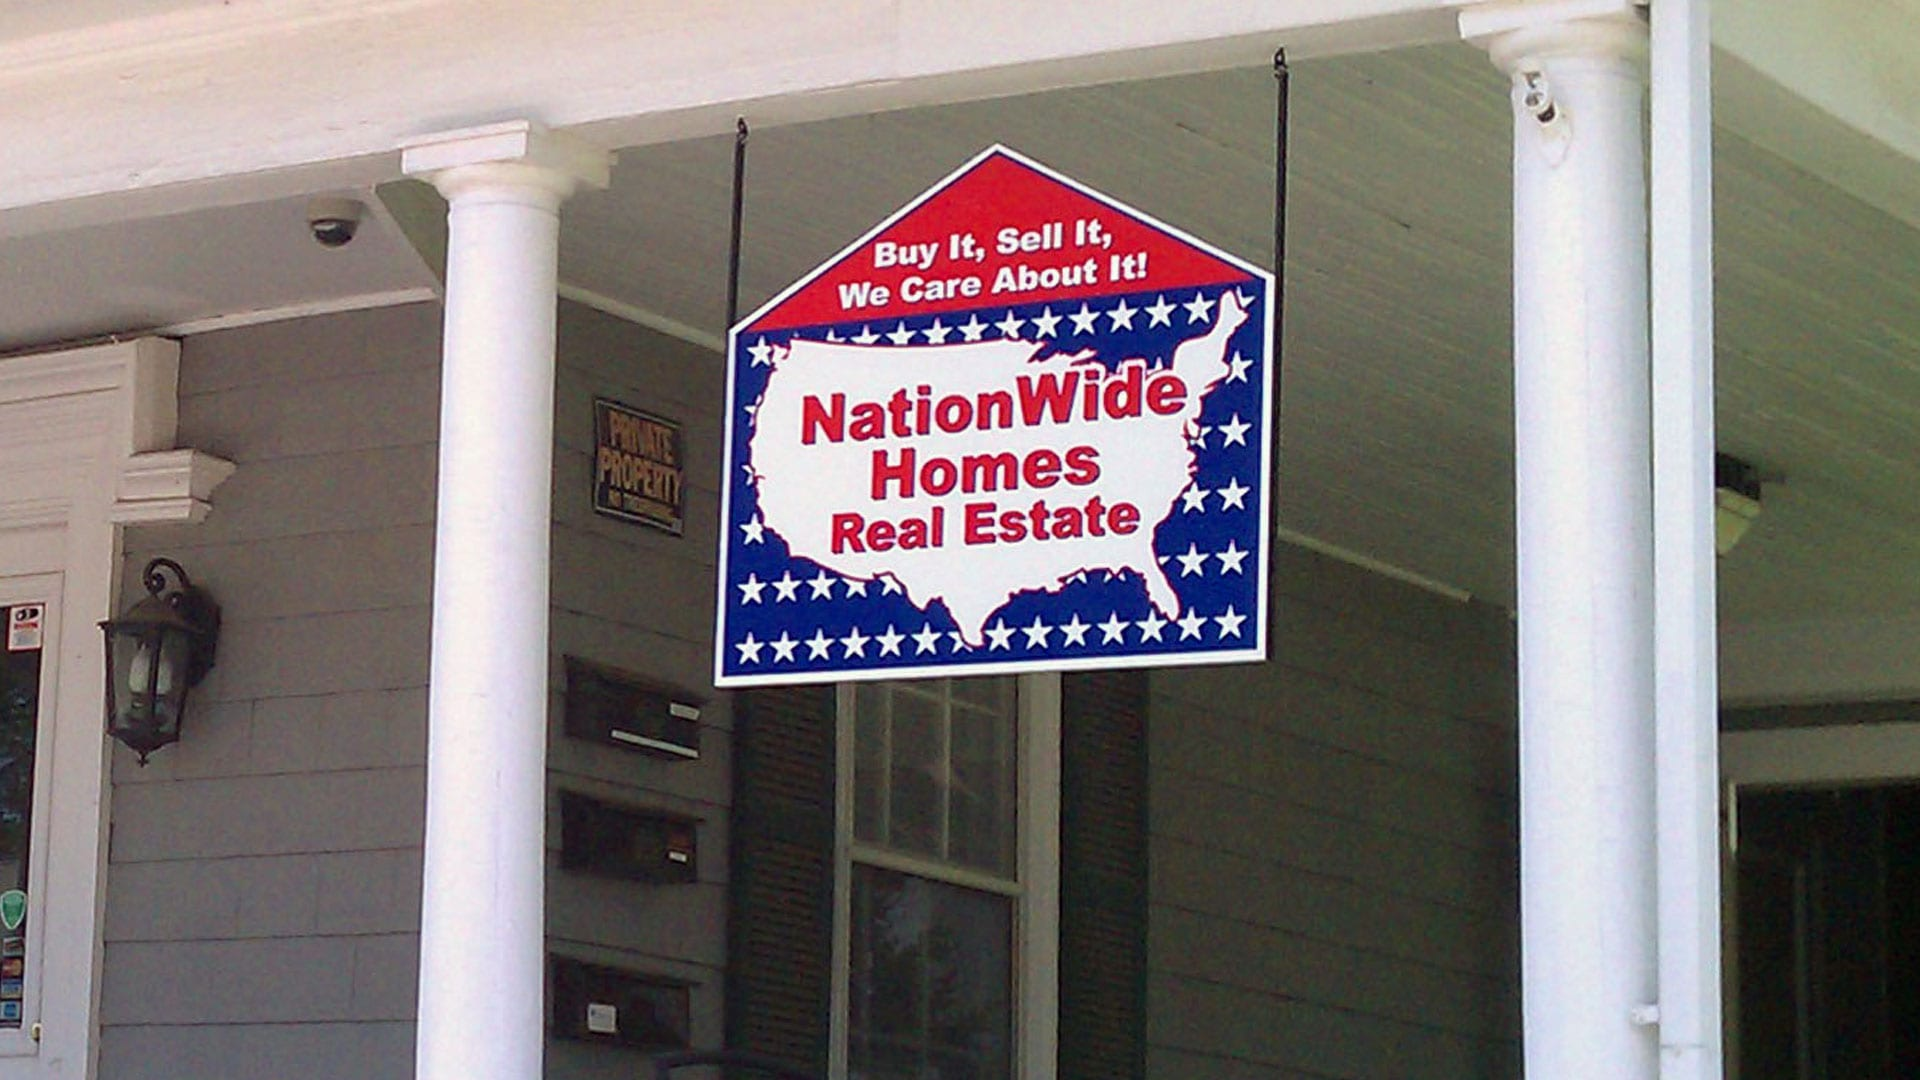 NationWide Homes hanging sign